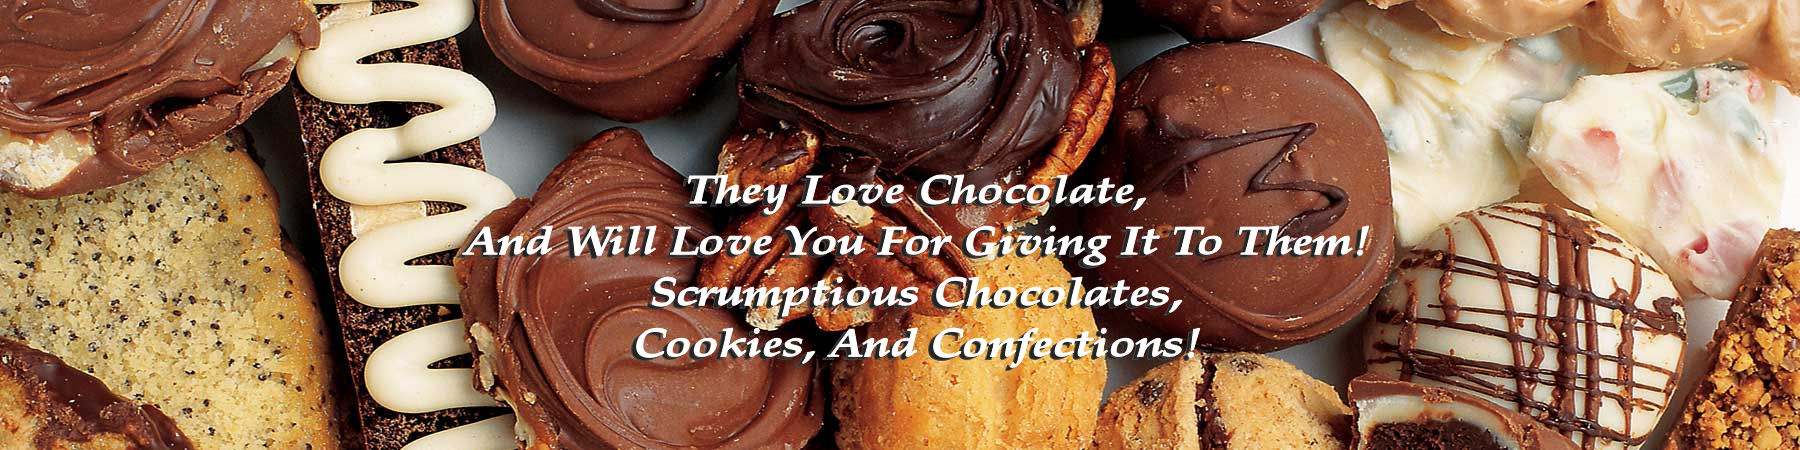 Delicious chocolate gift baskets & gifts